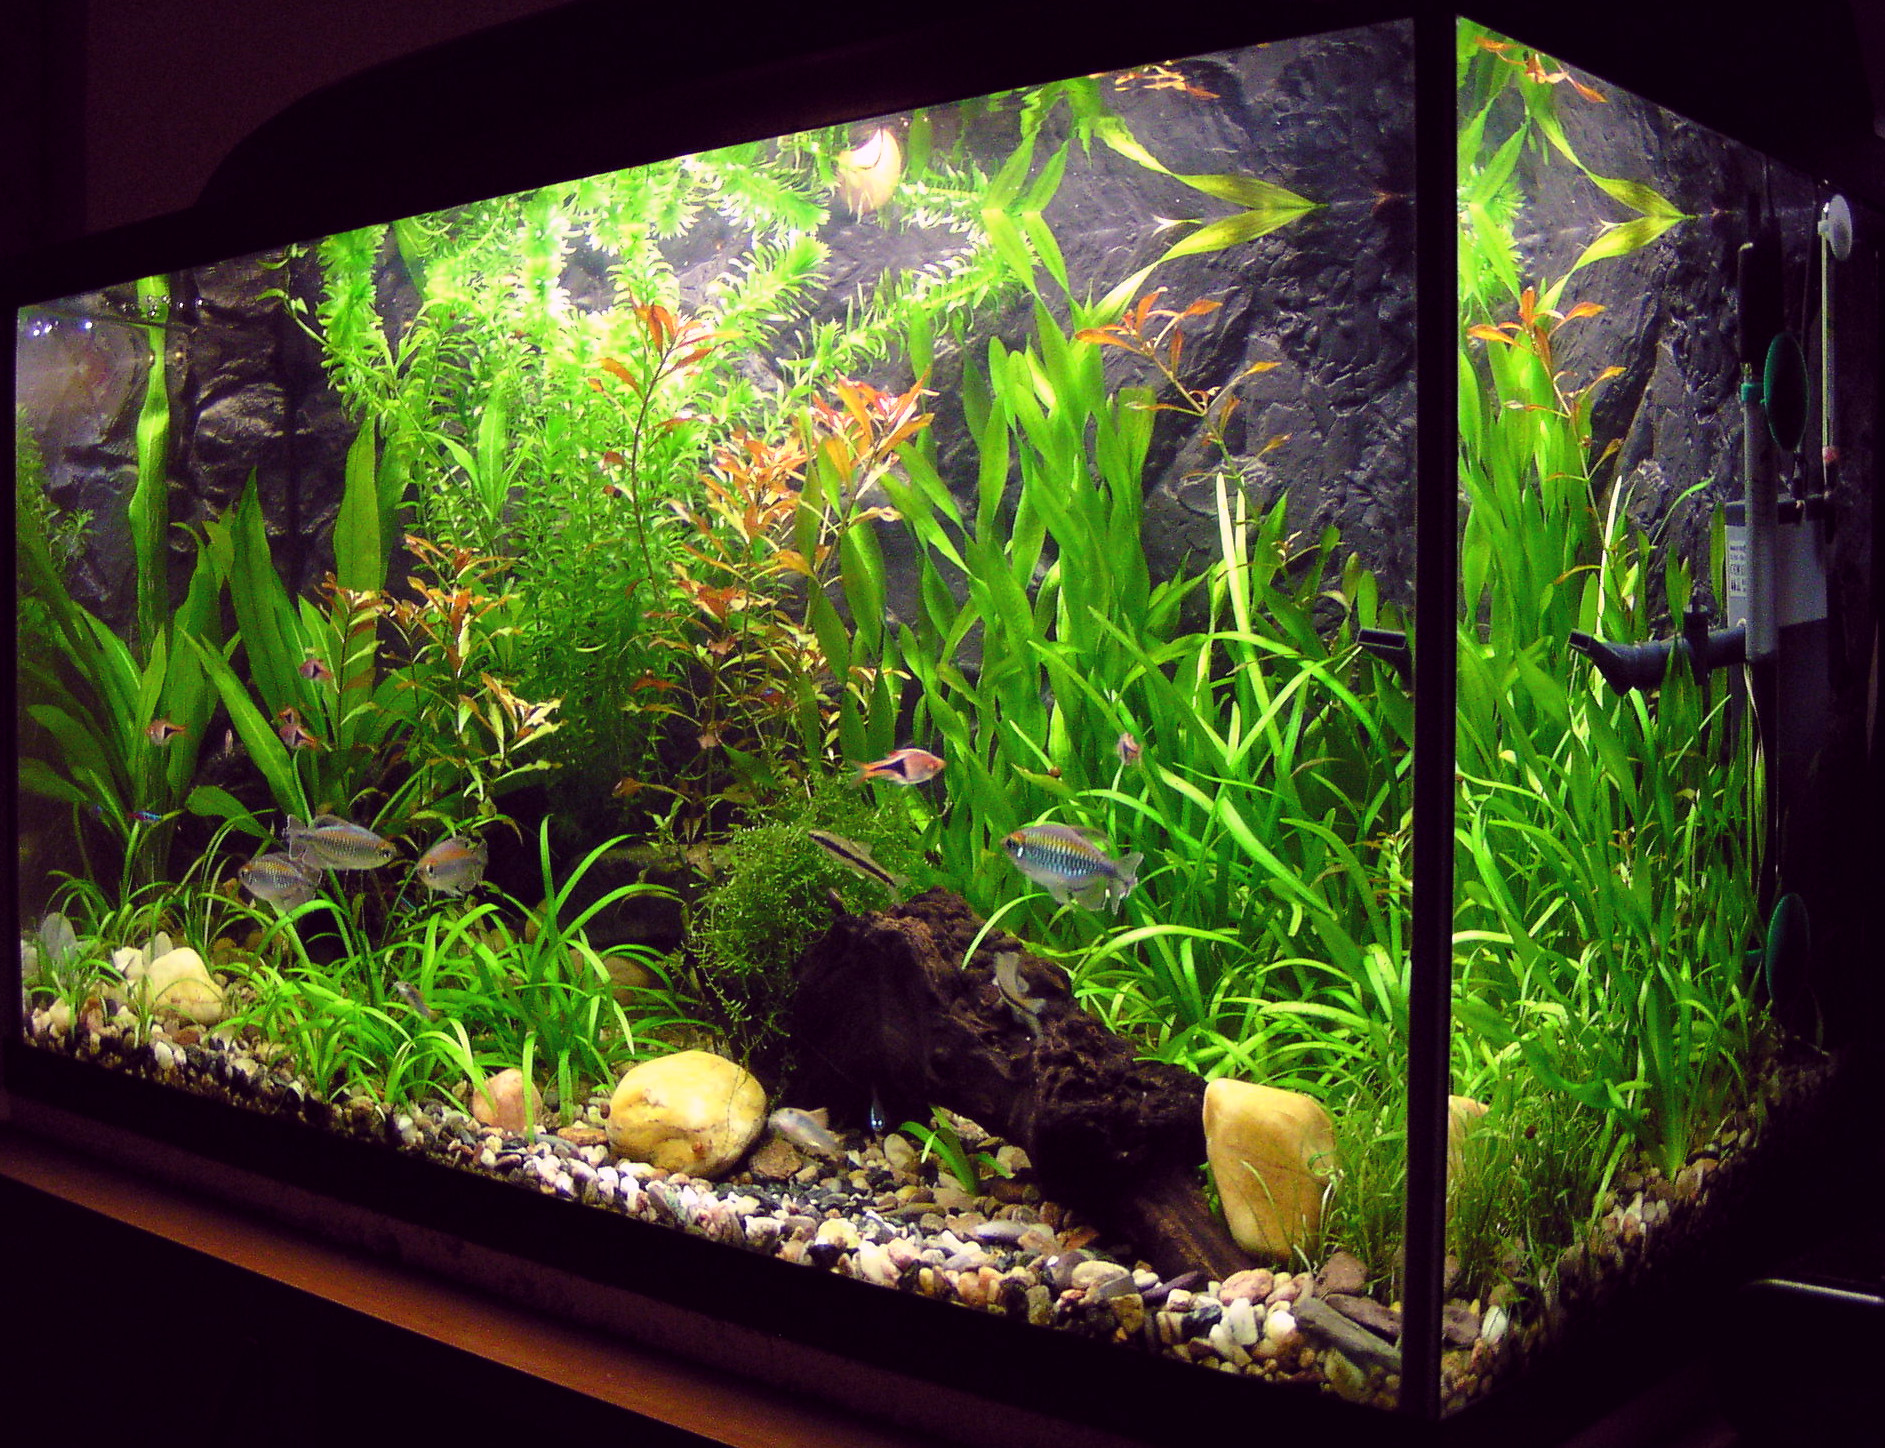 A freshwater aquarium with plants and tropical fish